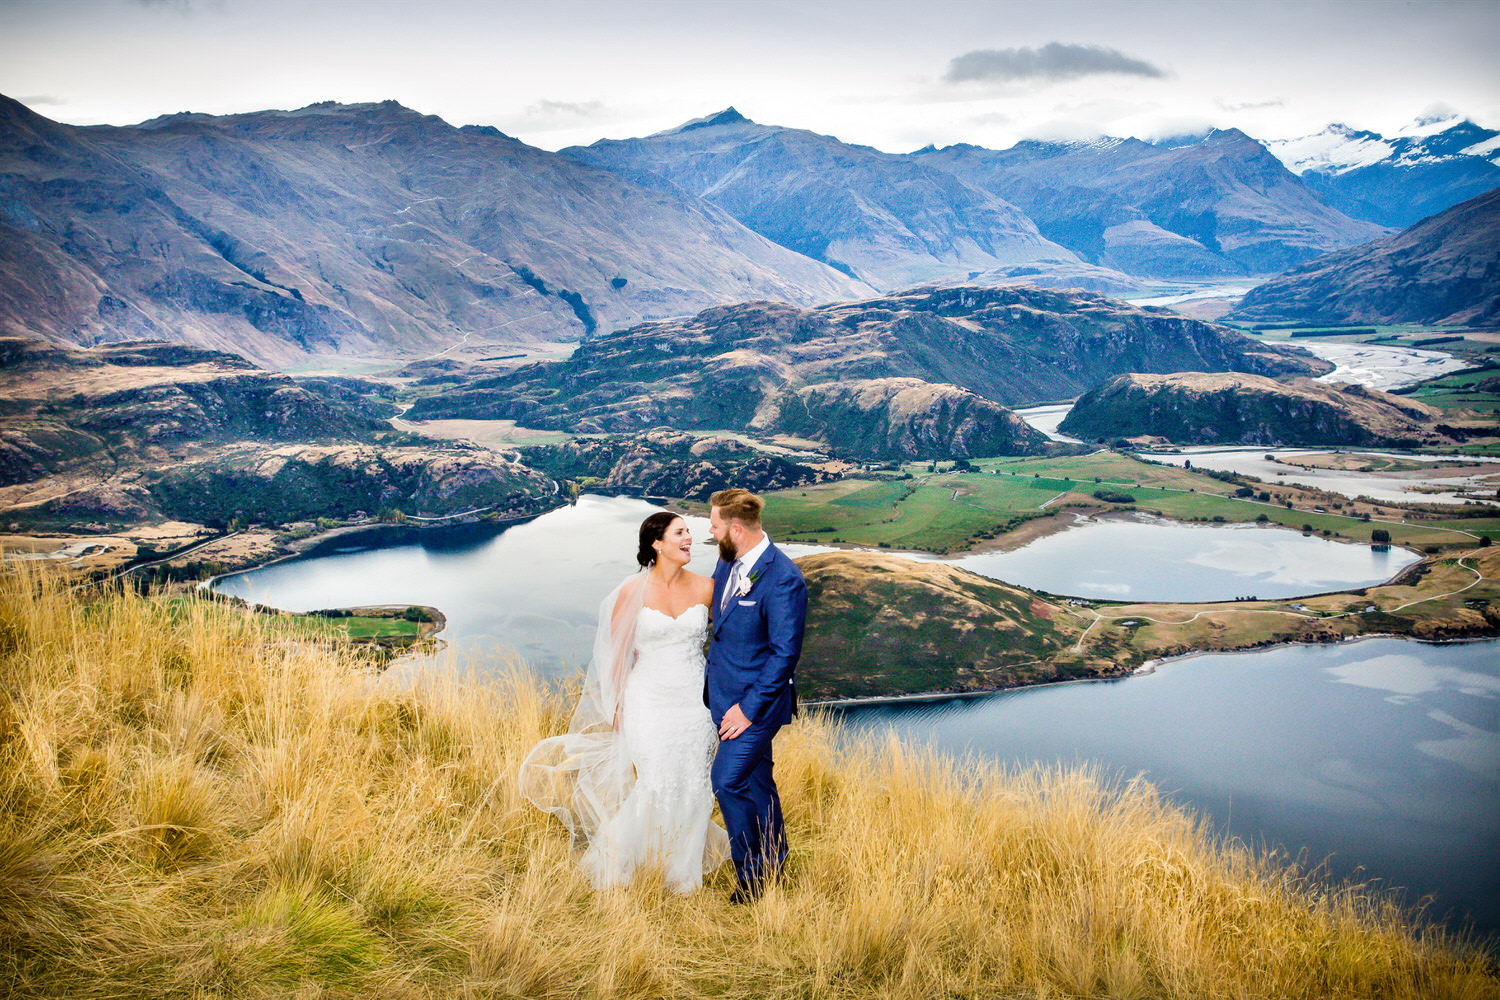 bride-groom-heli-wedding-wanaka.jpg